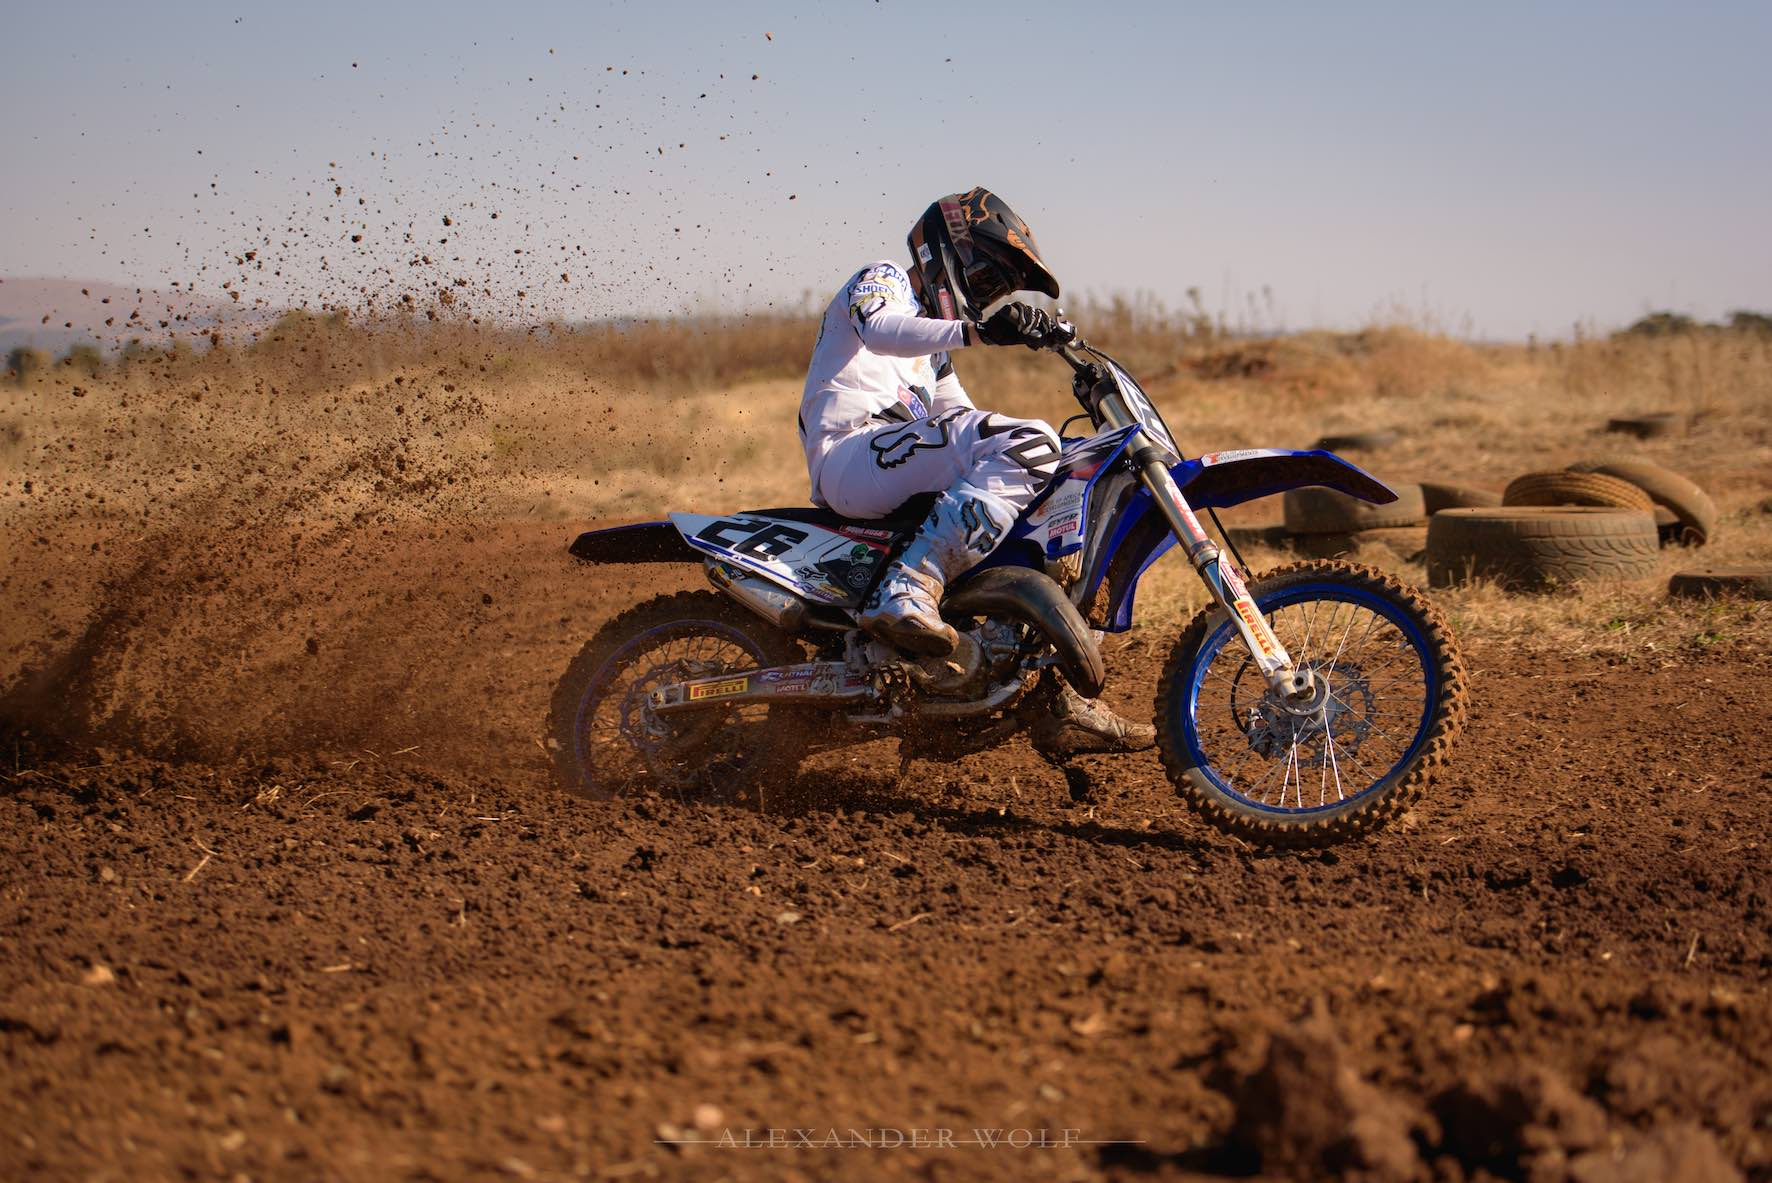 We interview up and coming motocross rider Migsta26